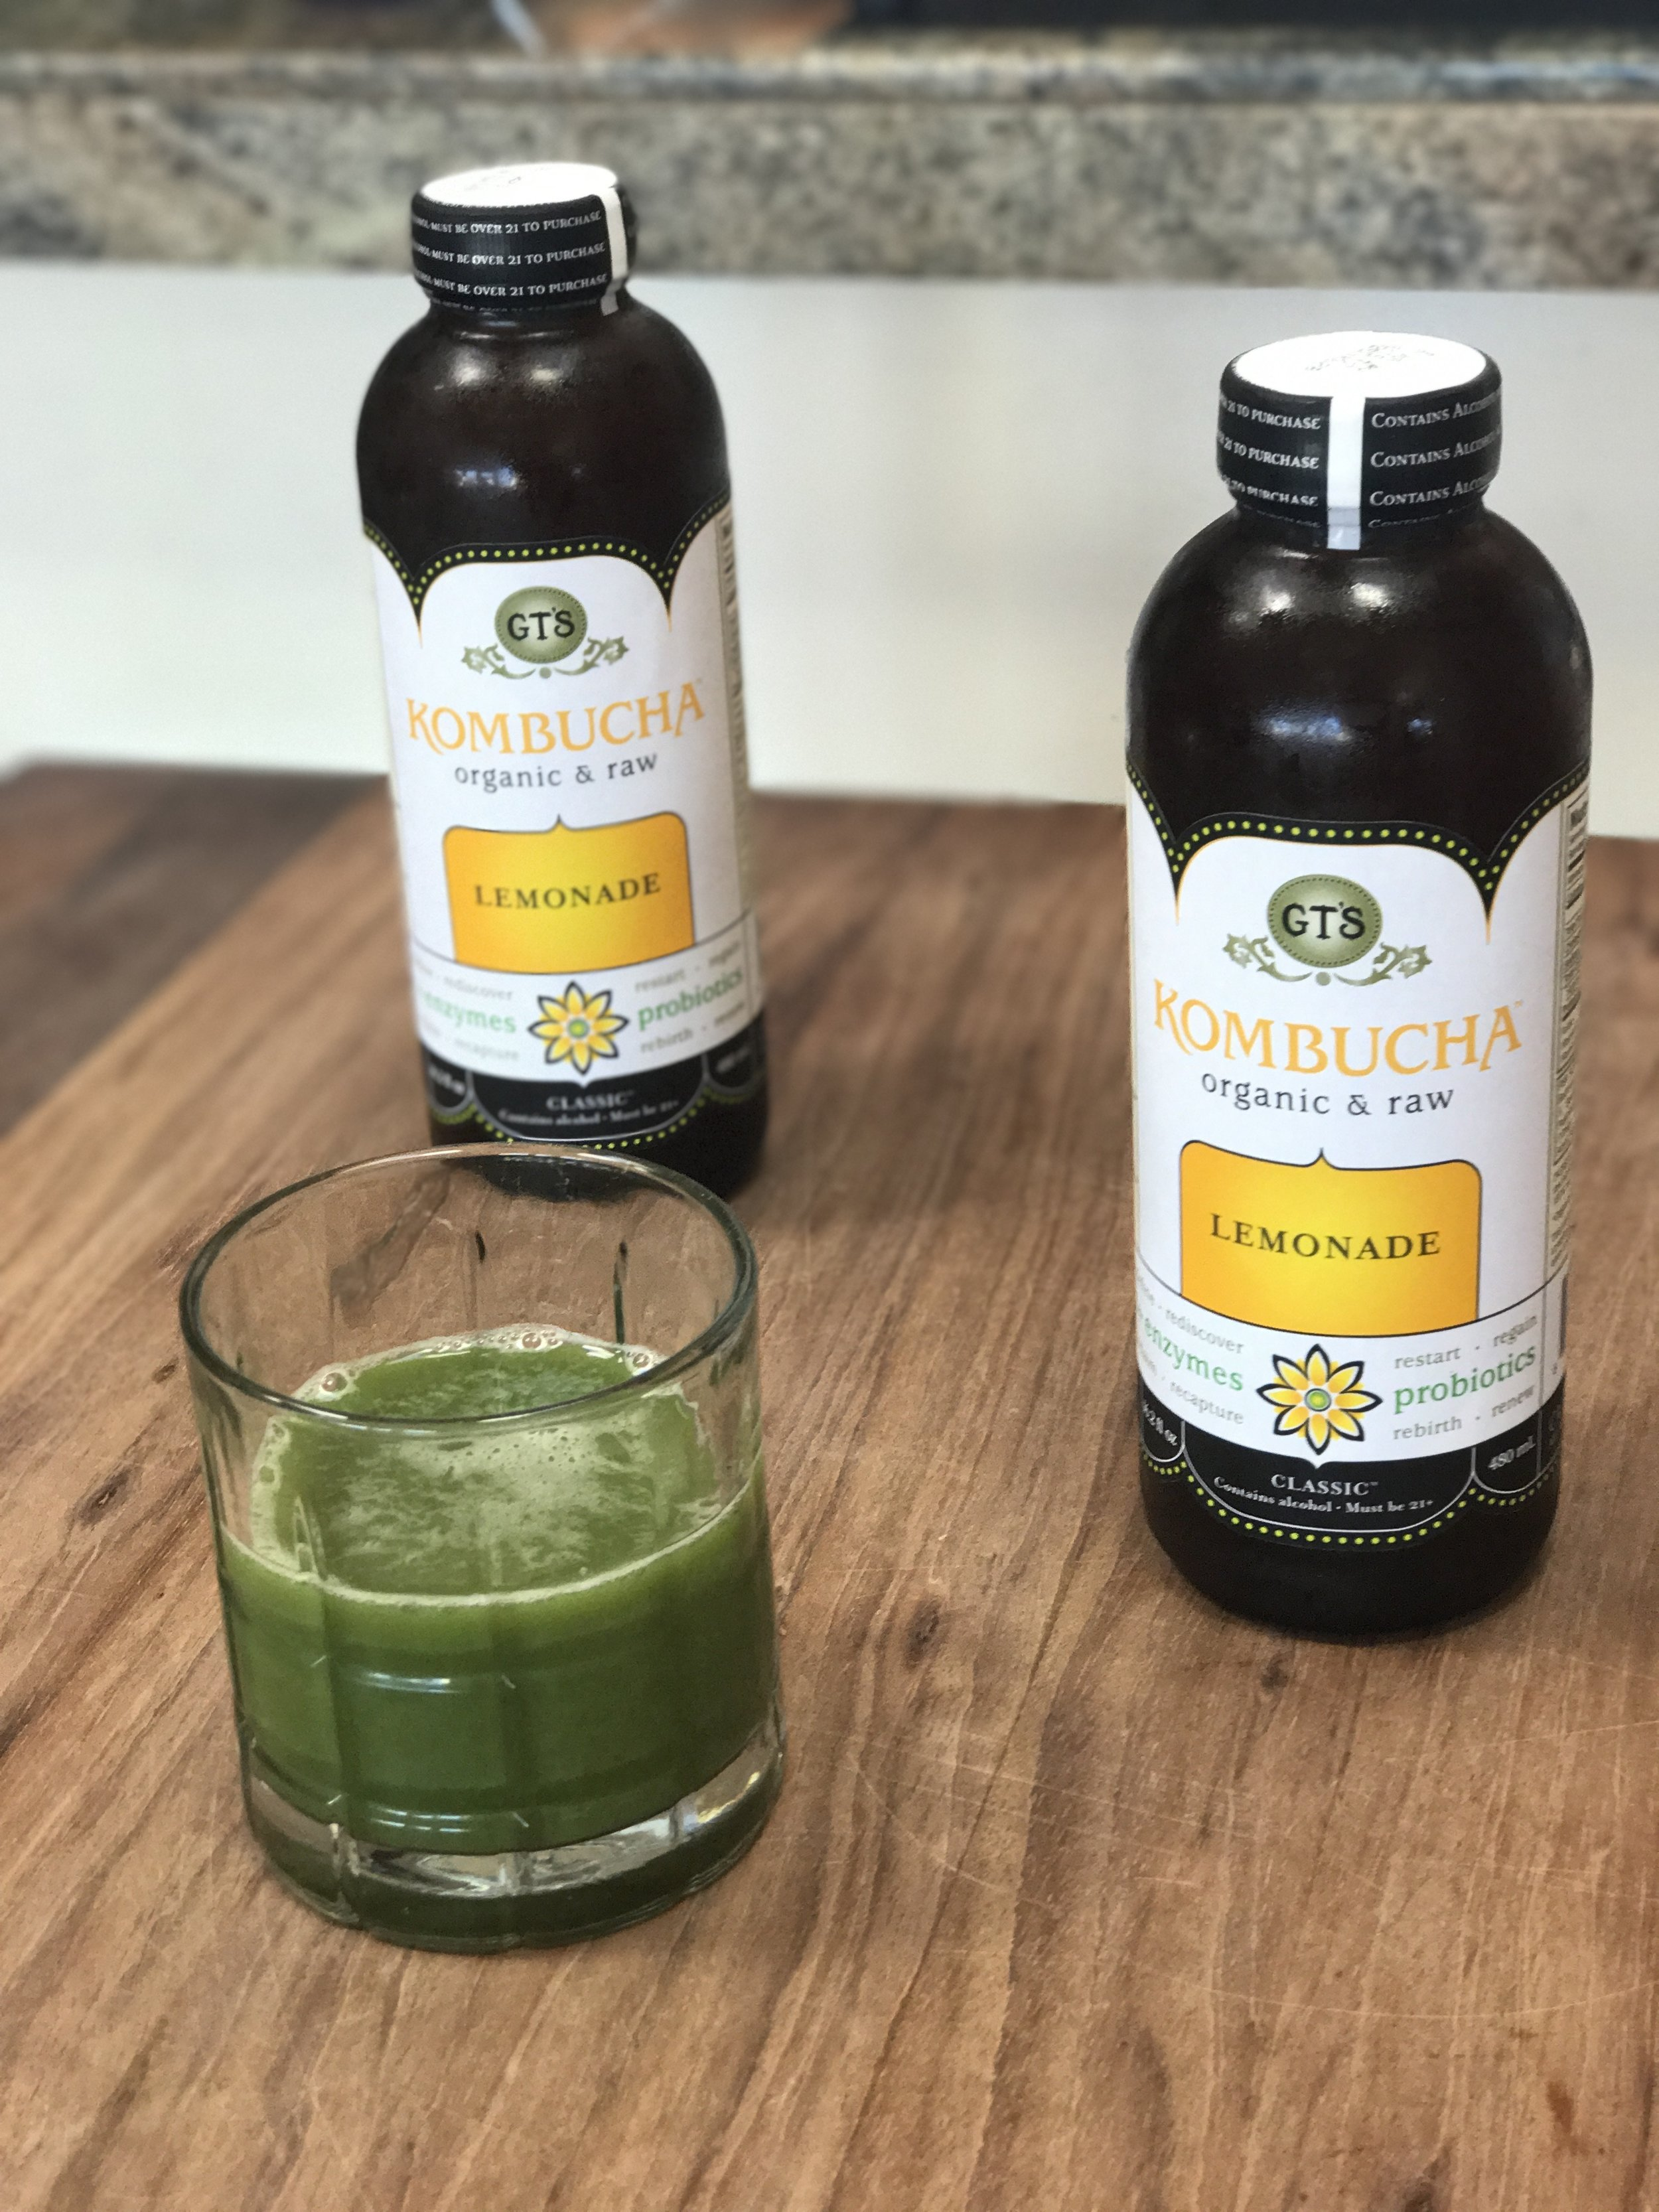 Drink one half of a  low-sugar kombucha  (like GTS) daily for tremendous probiotic benefits!